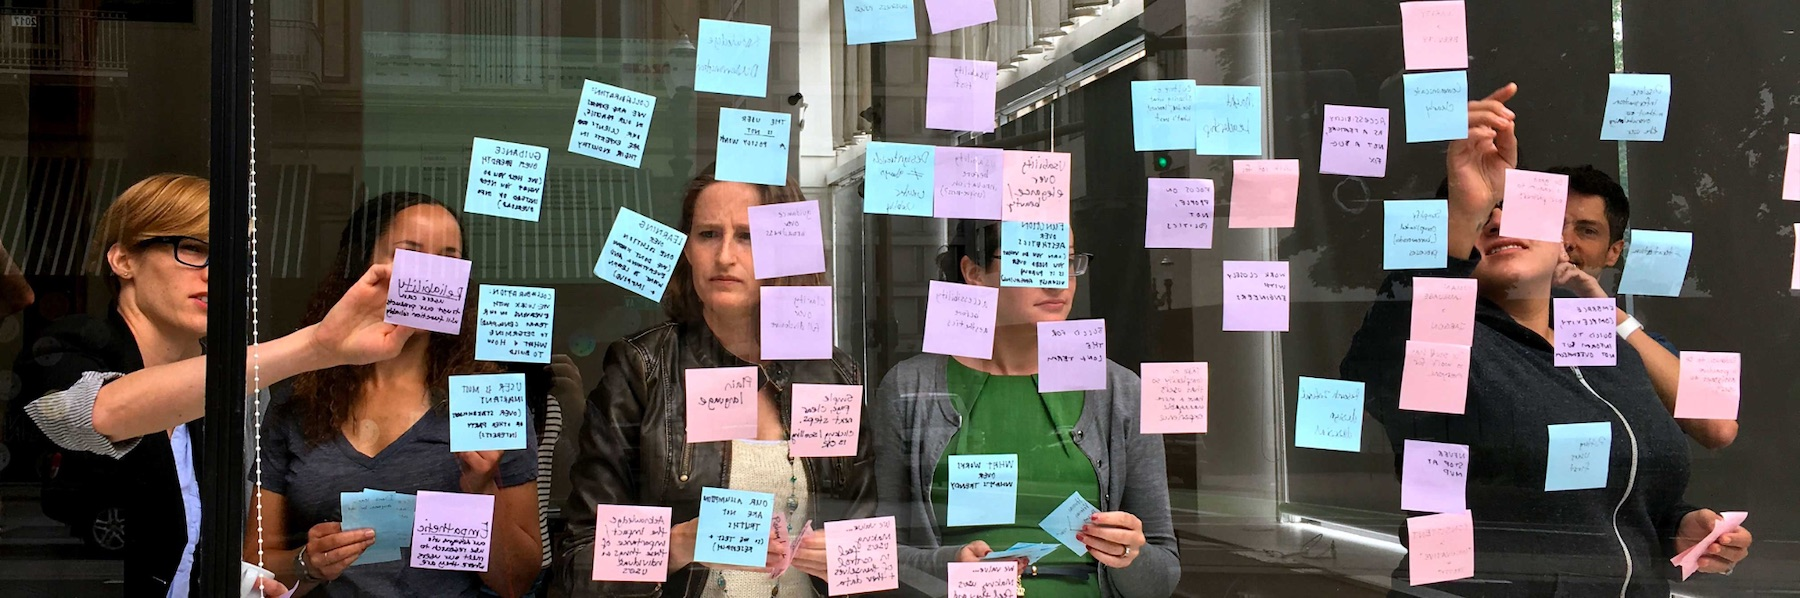 Ad Hoc staff pointing to a wall of Post-It notes on glass during an affinity mapping exercise.